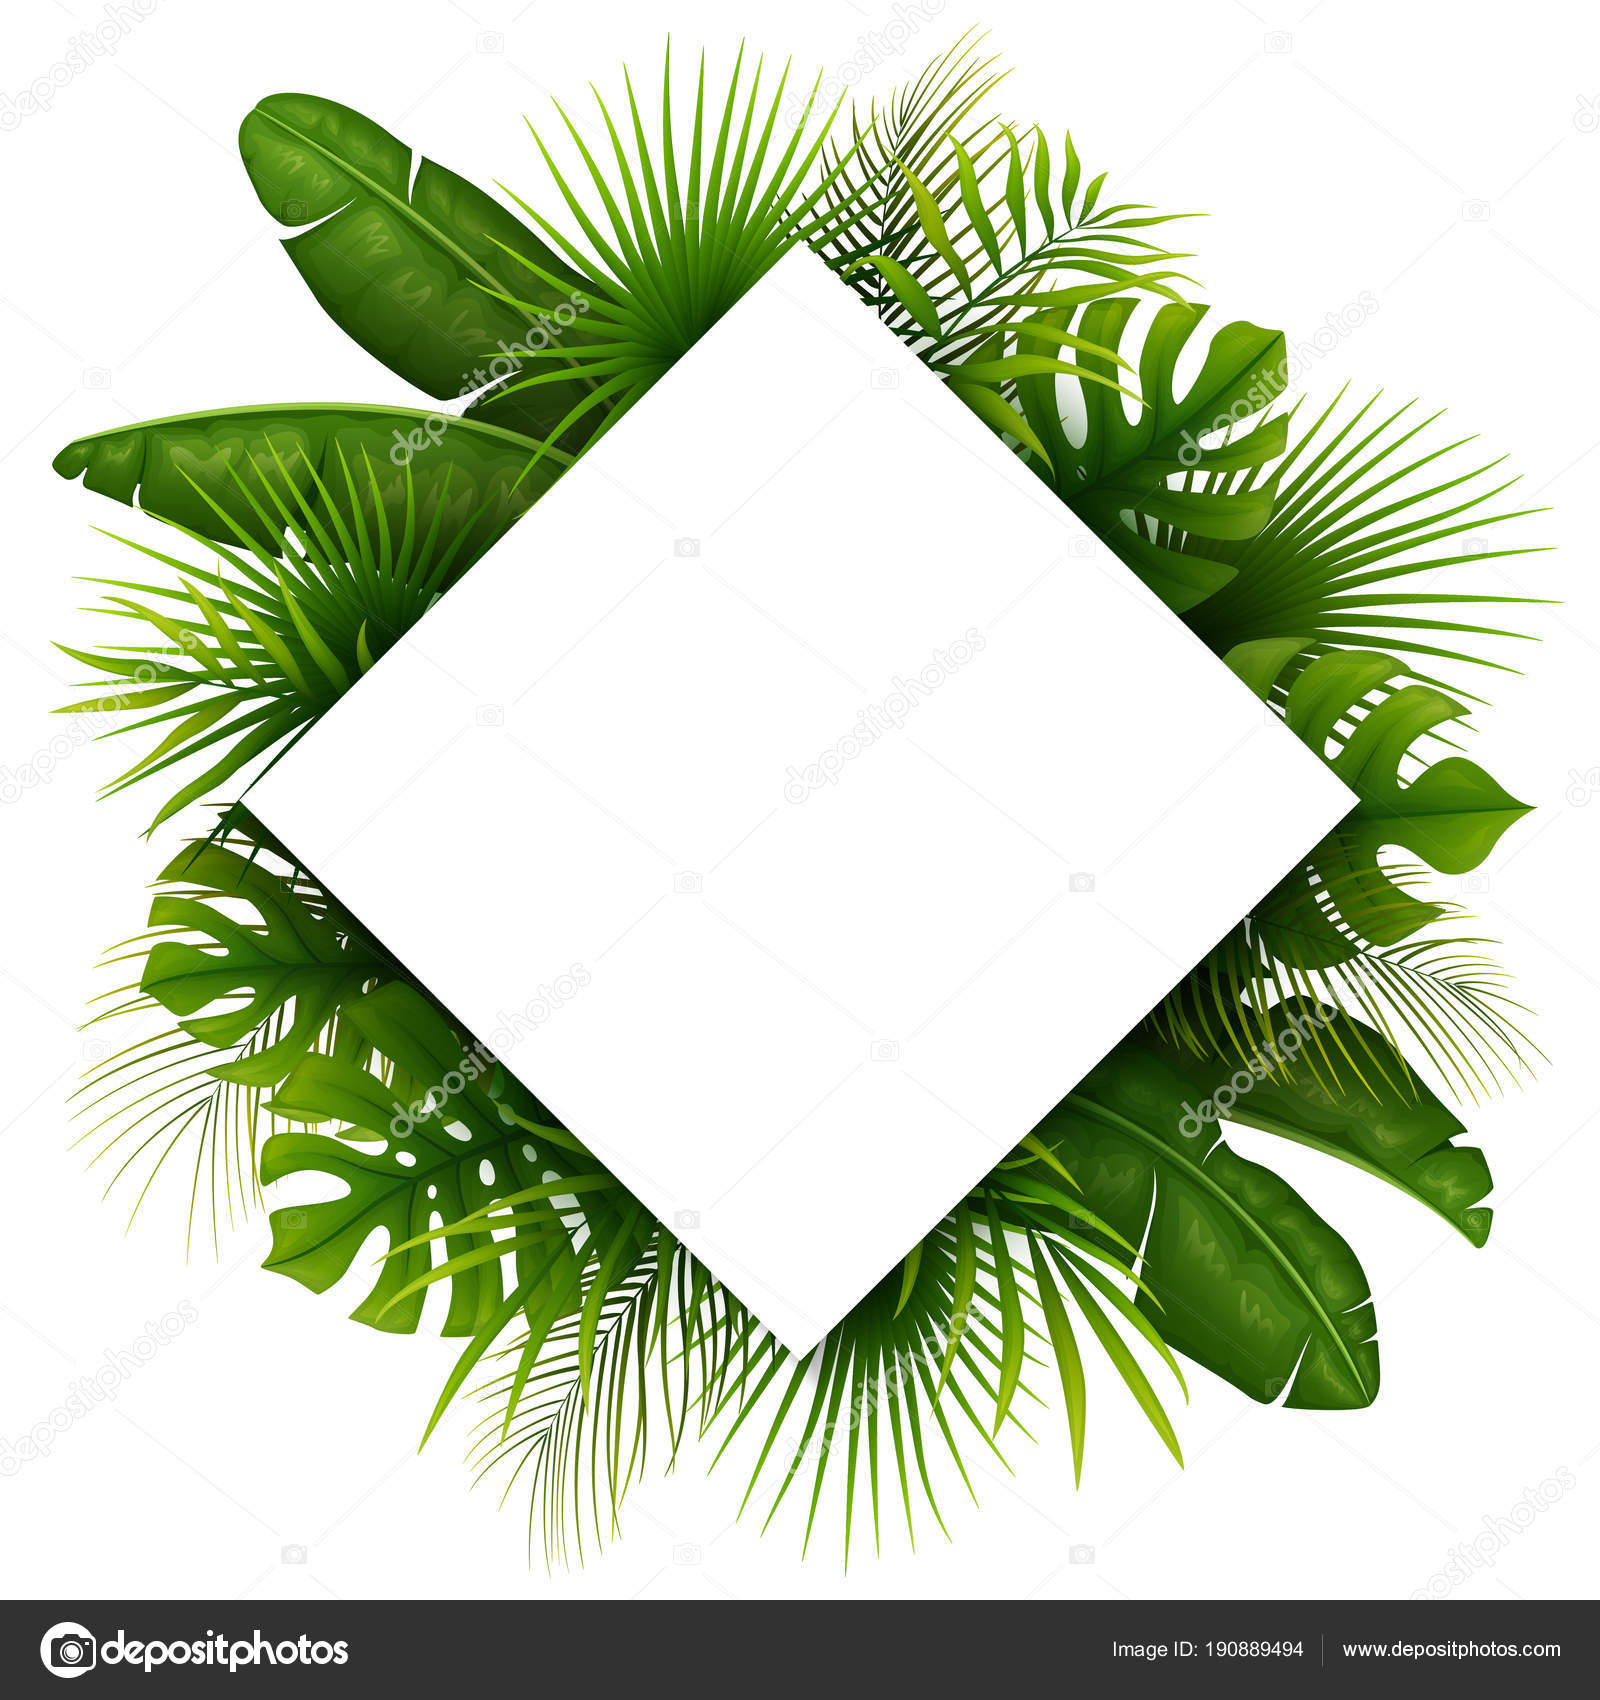 Tropical Green Leaves White Frame Place Text Isolated White Background Stock Vector C Dreamcreation01 190889494 Simple green tropical leaves design seamless pattern exotic pink flamingos, tropical plants and jungle flowers monstera and palm leaves. https depositphotos com 190889494 stock illustration tropical green leaves white frame html